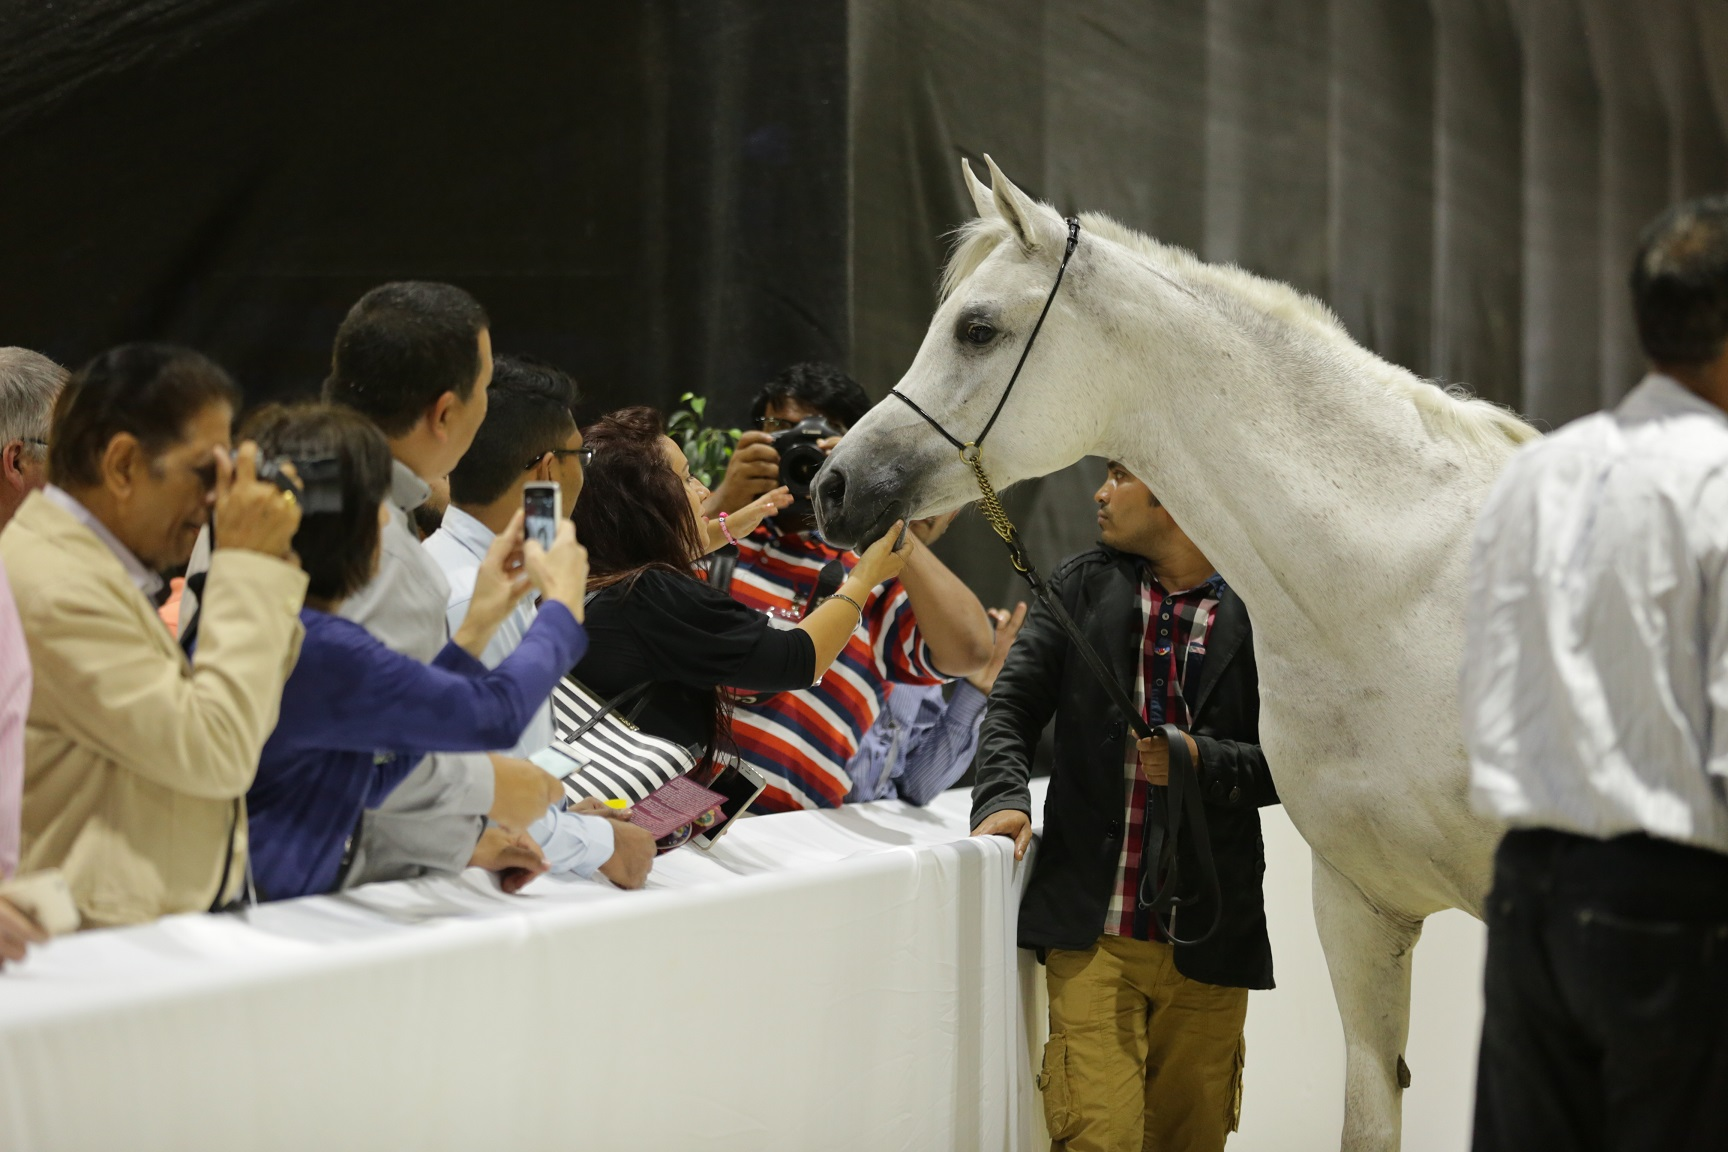 Horse Times Egypt: Equestrian Magazine :News :ASSORTMENT OF HORSE BREEDS AND PERFORMANCES DAZZLE CROWDS AT 12TH DUBAI INTERNATIONAL HORSE FAIR